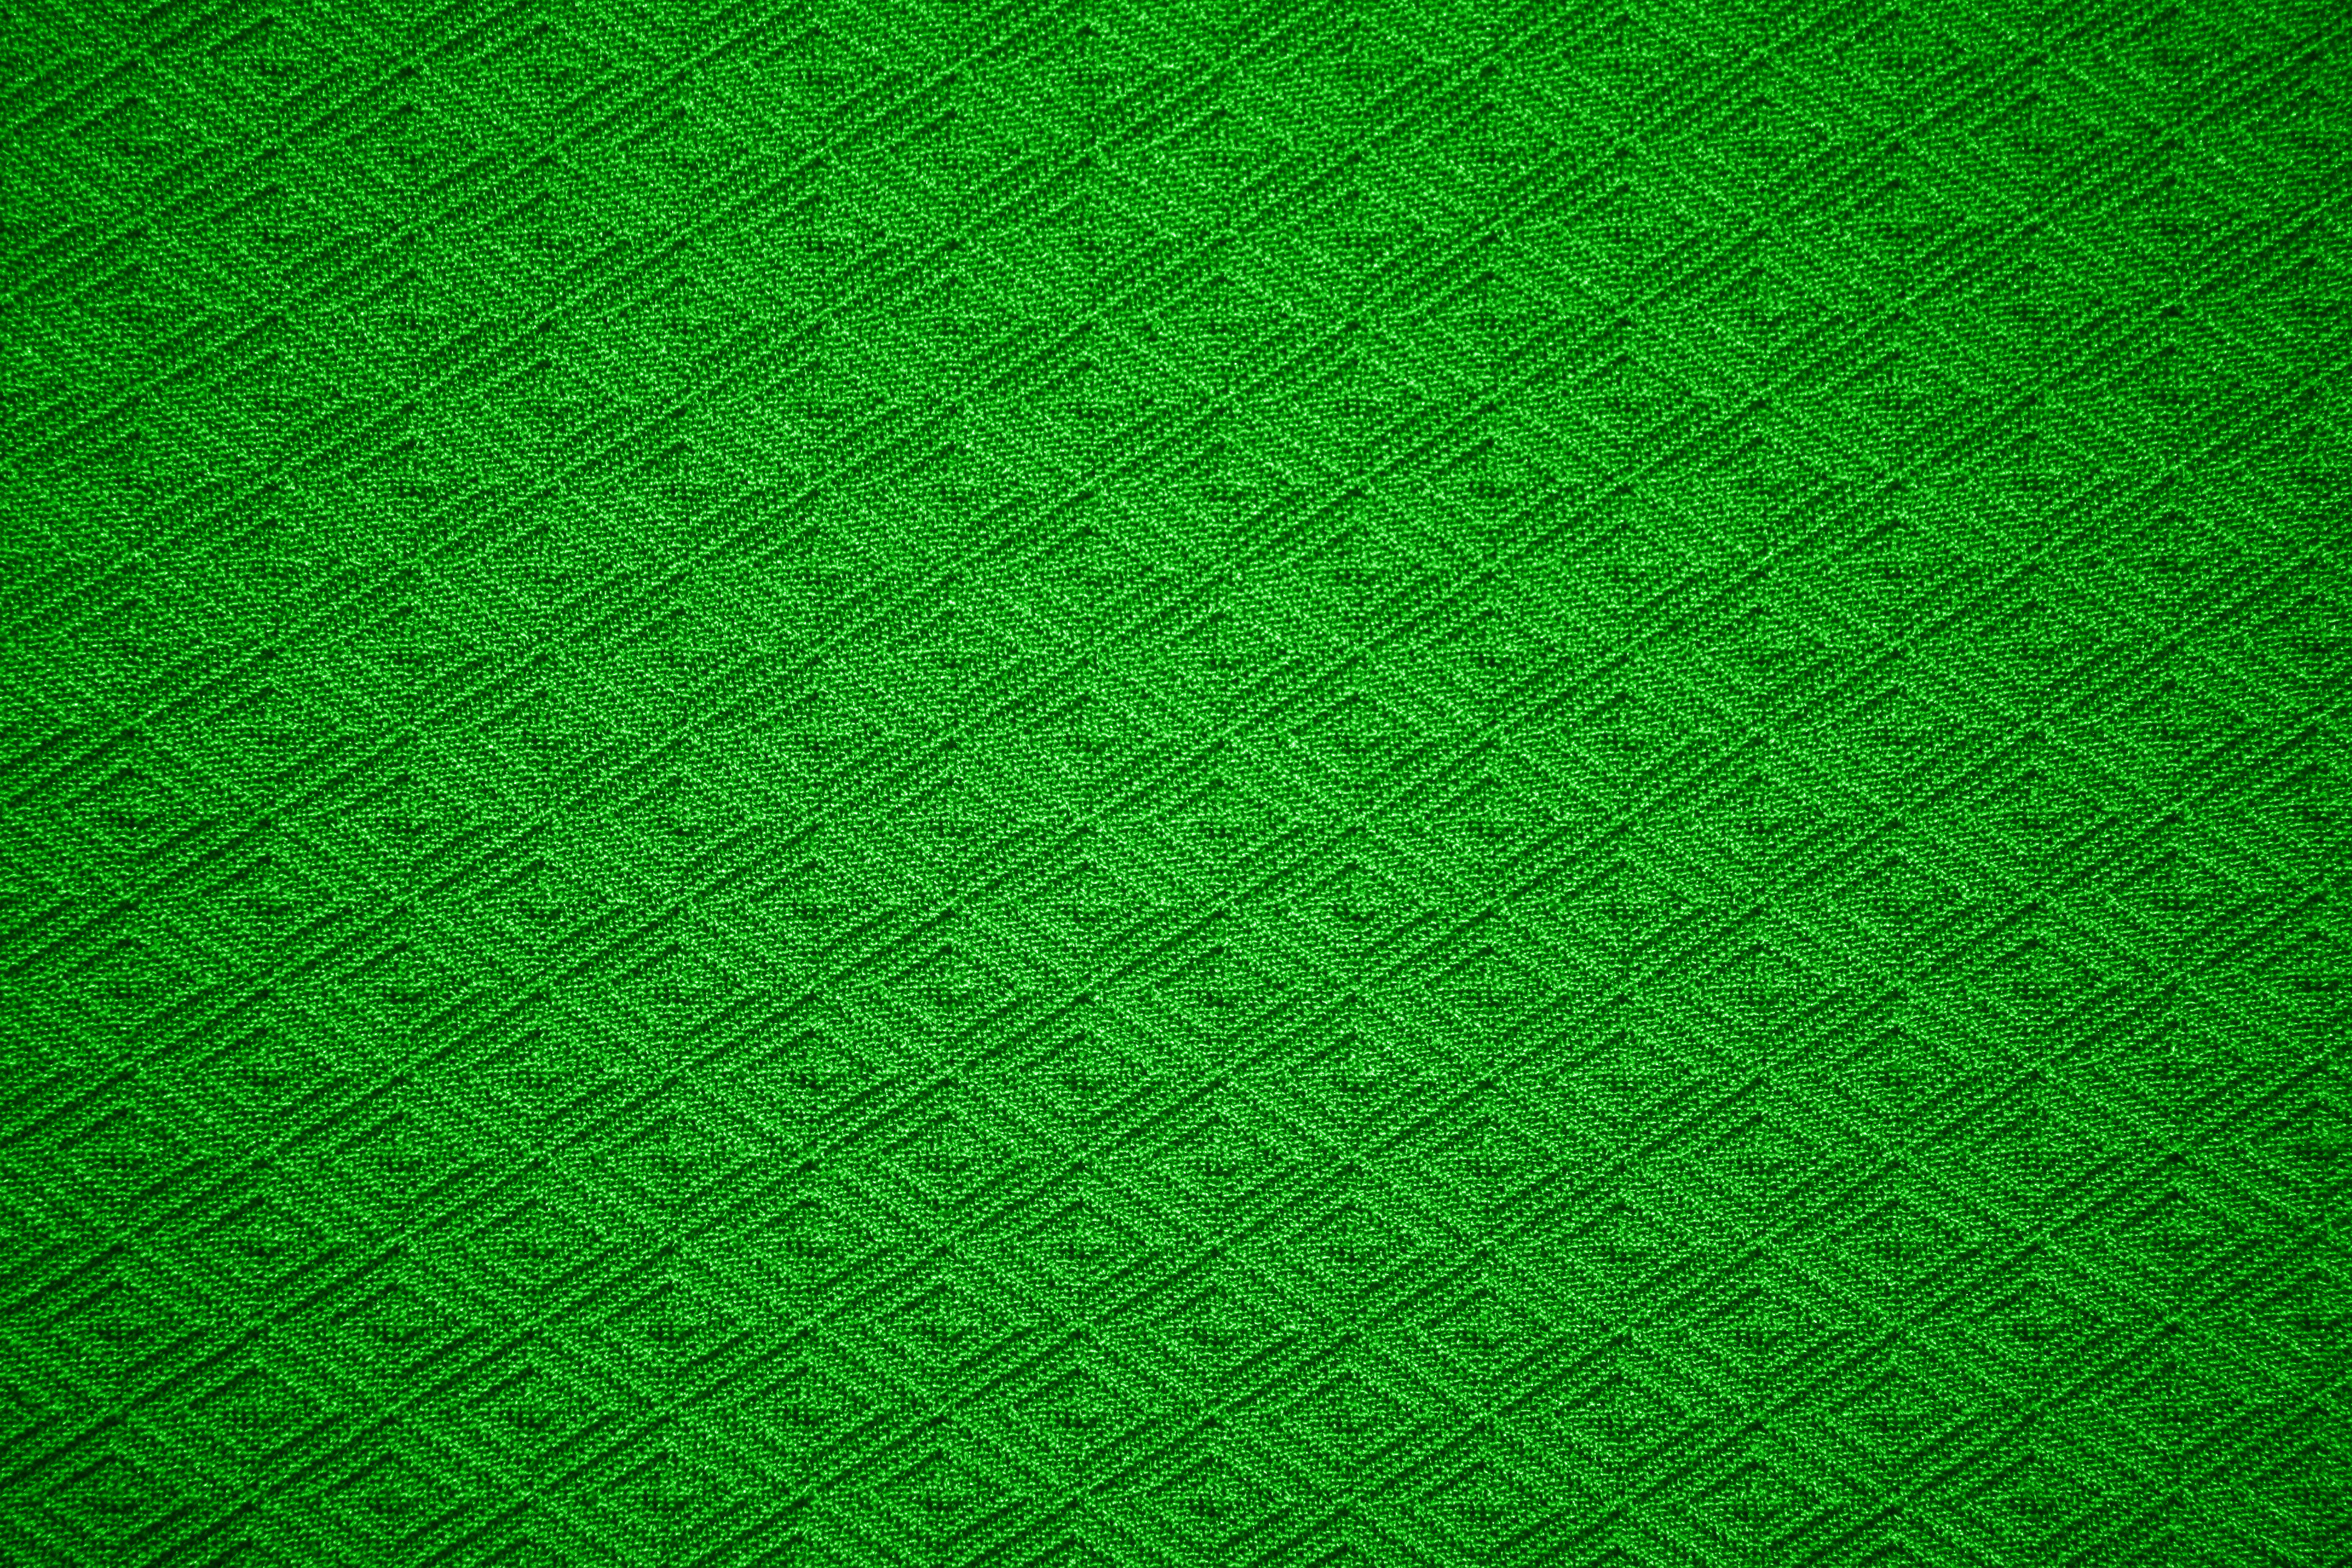 green pattern patterns 1900x1200 - photo #17